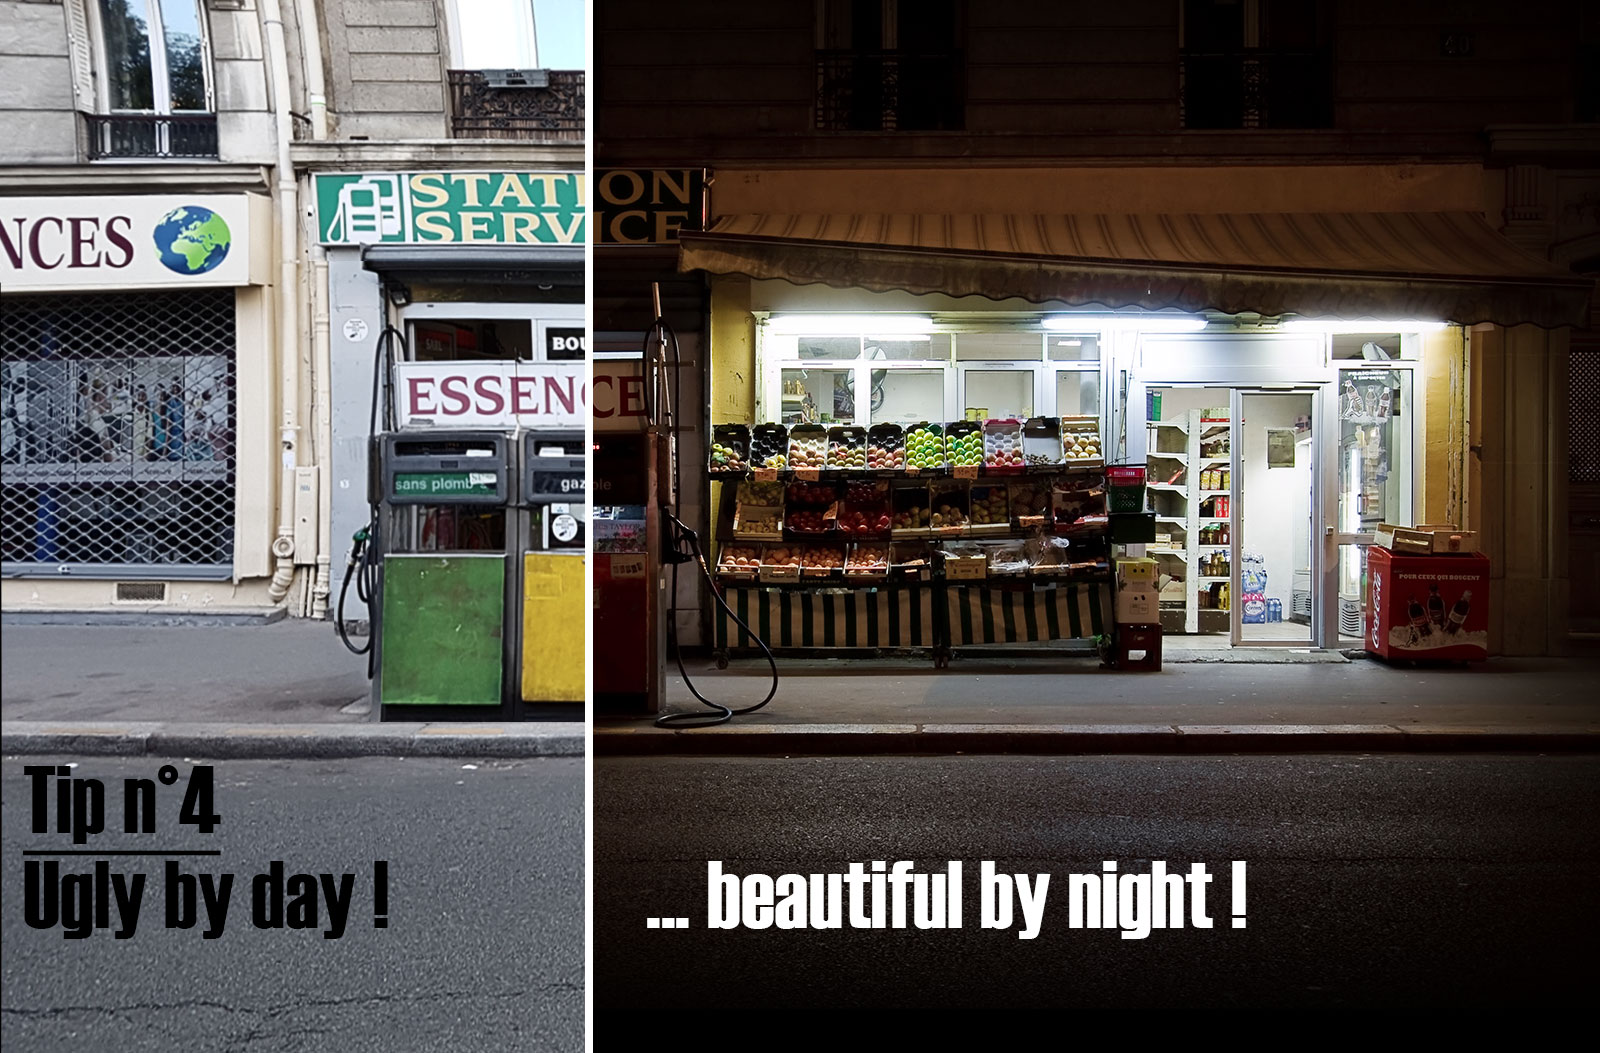 Tip n°4 : Ugly by day... beautiful by night